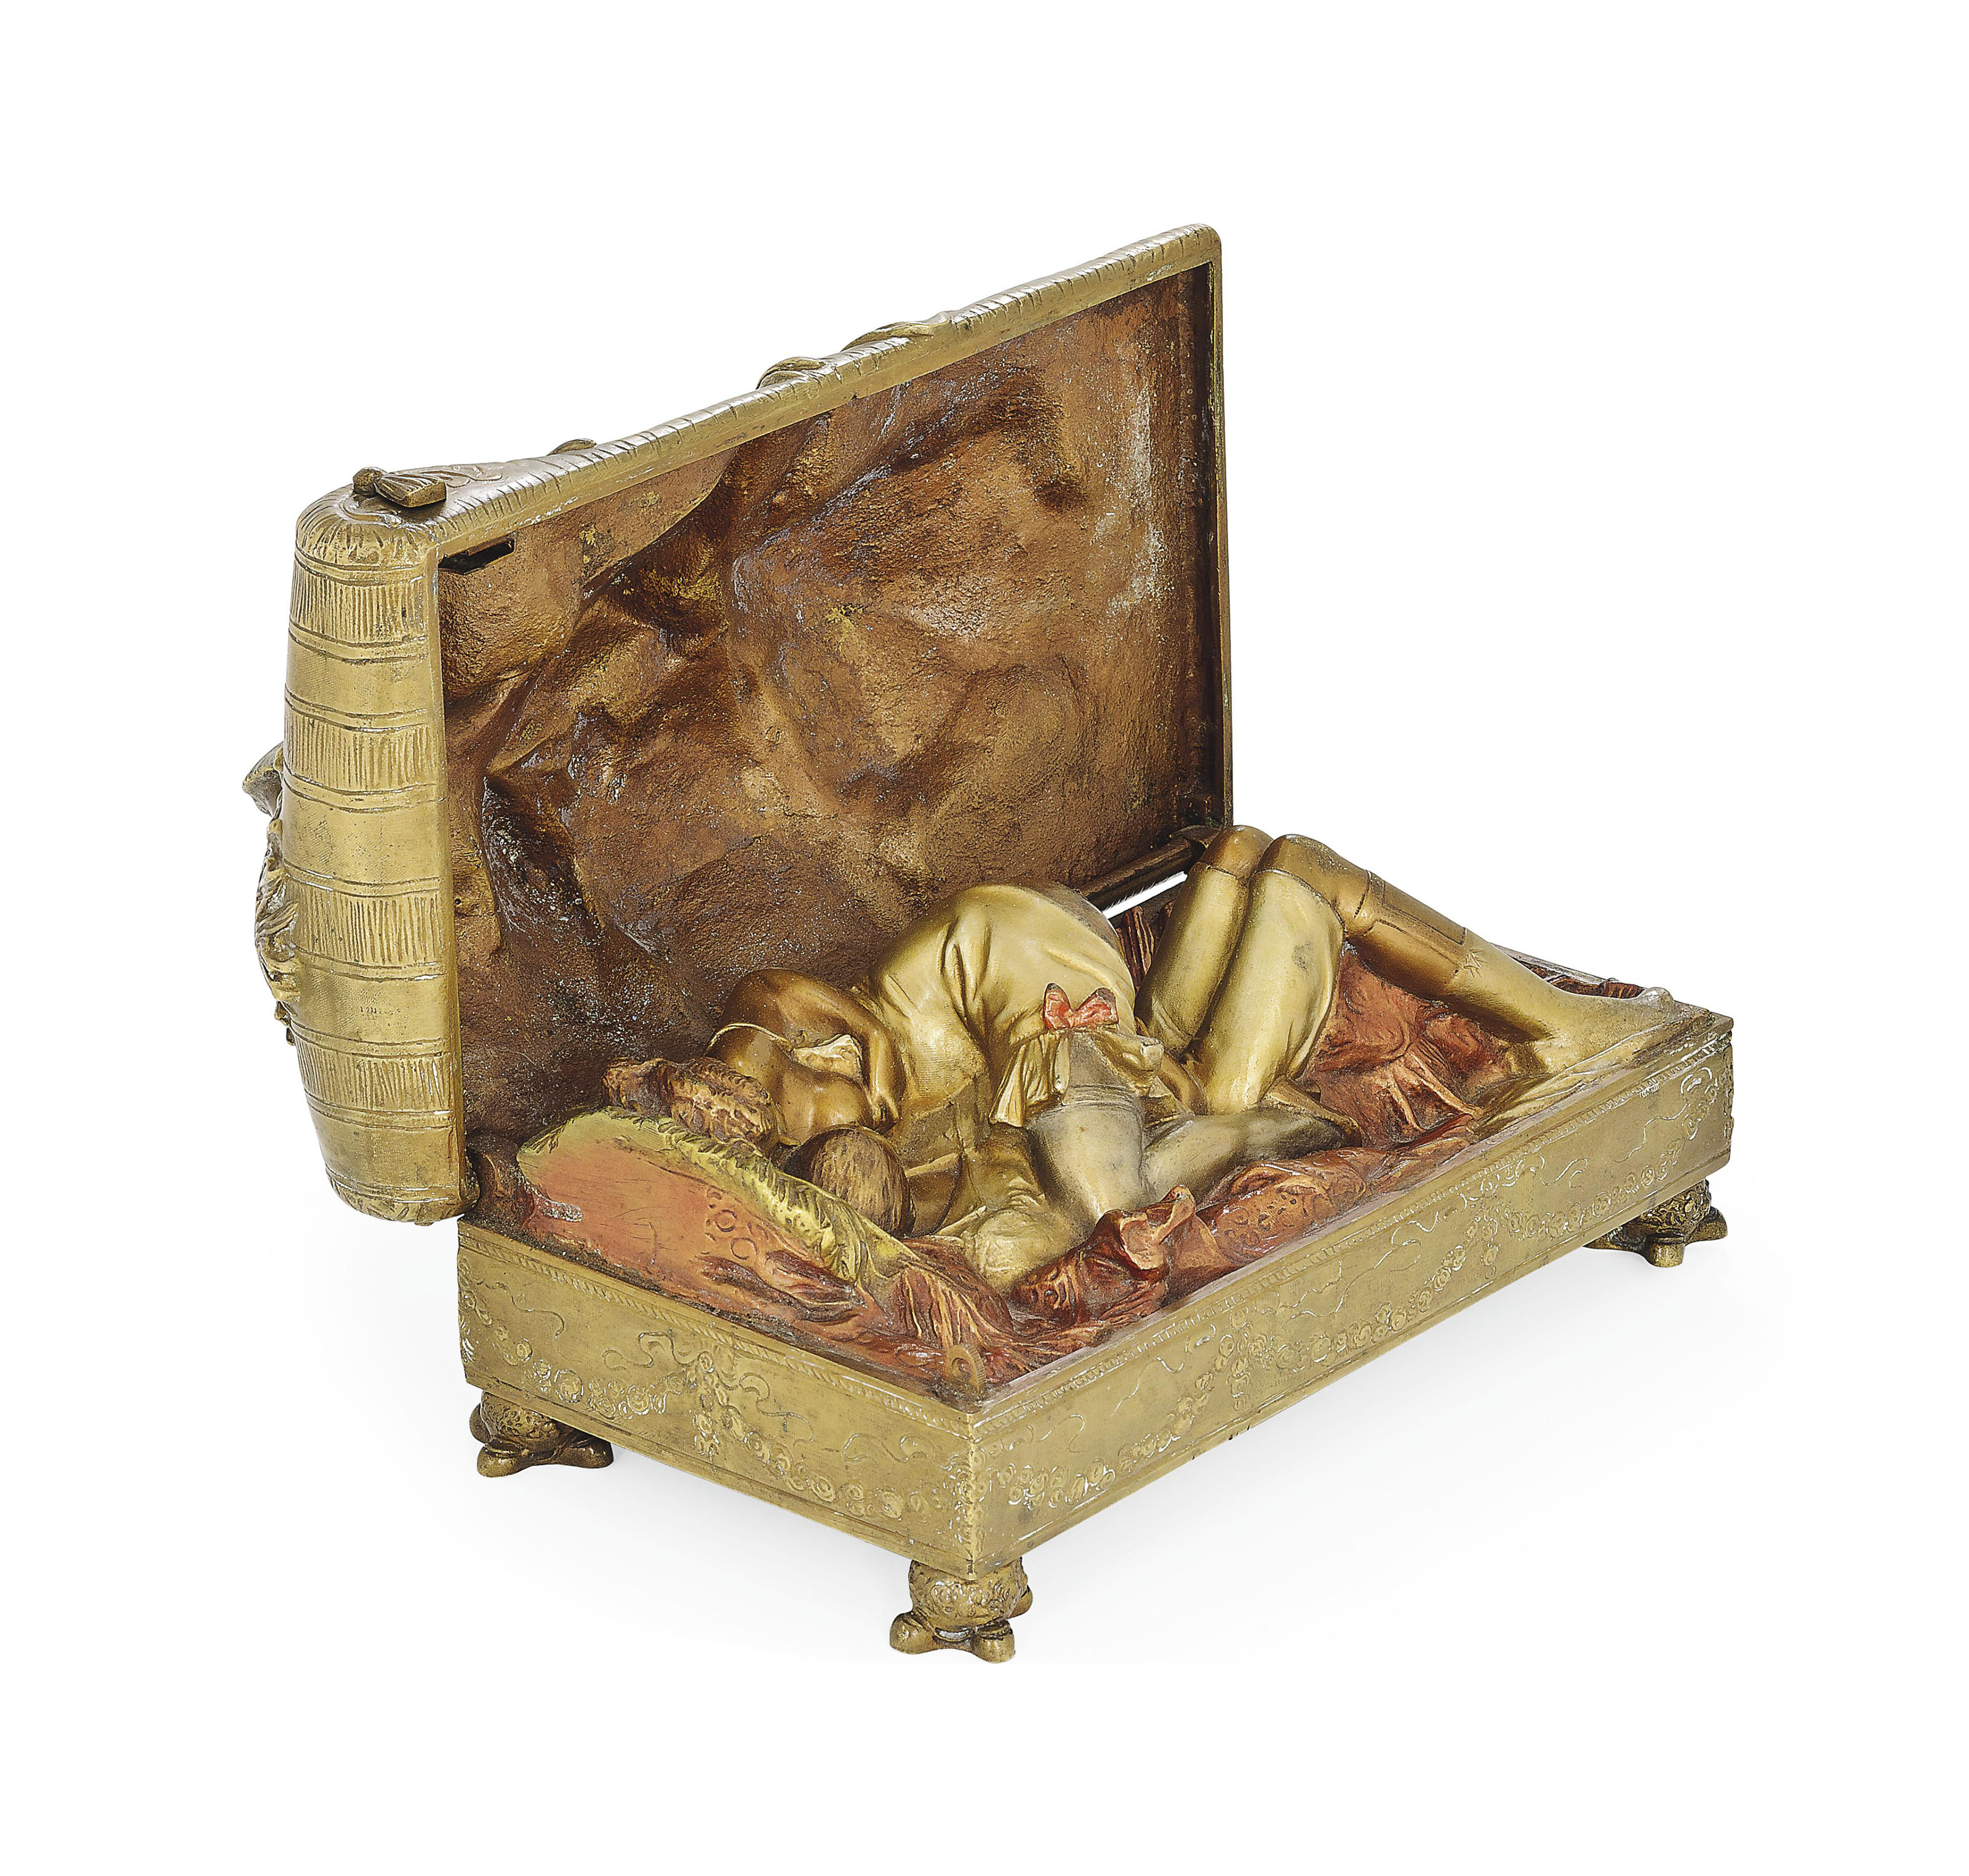 AN EROTIC, COLD-PAINTED BRONZE BOX AND COVER, ATTRIBUTED TO BRUNO ZACH (1891-1935)